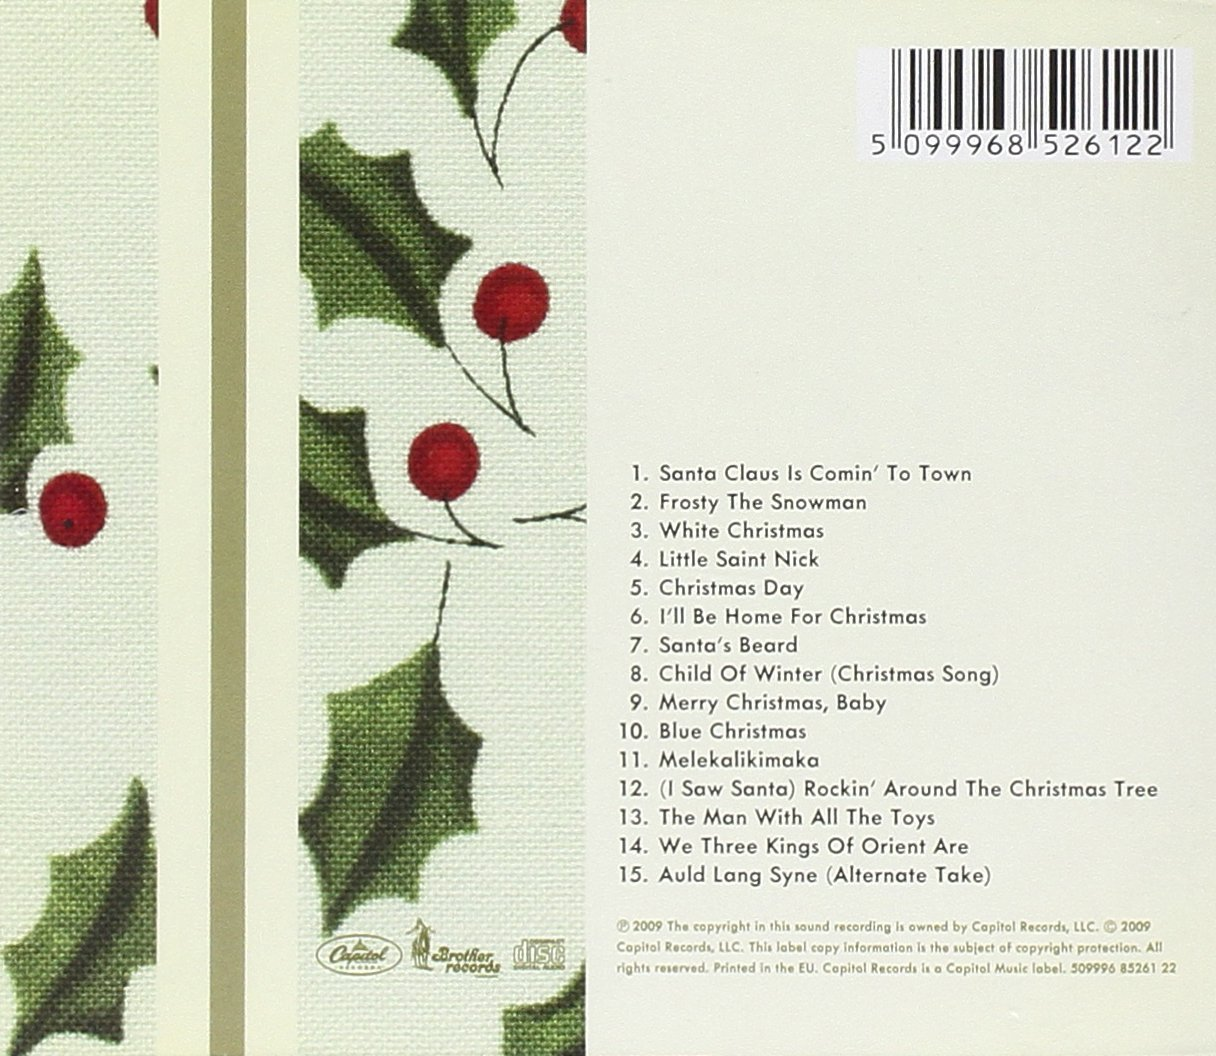 BEACH BOYS - Christmas Harmonies - Amazon.com Music